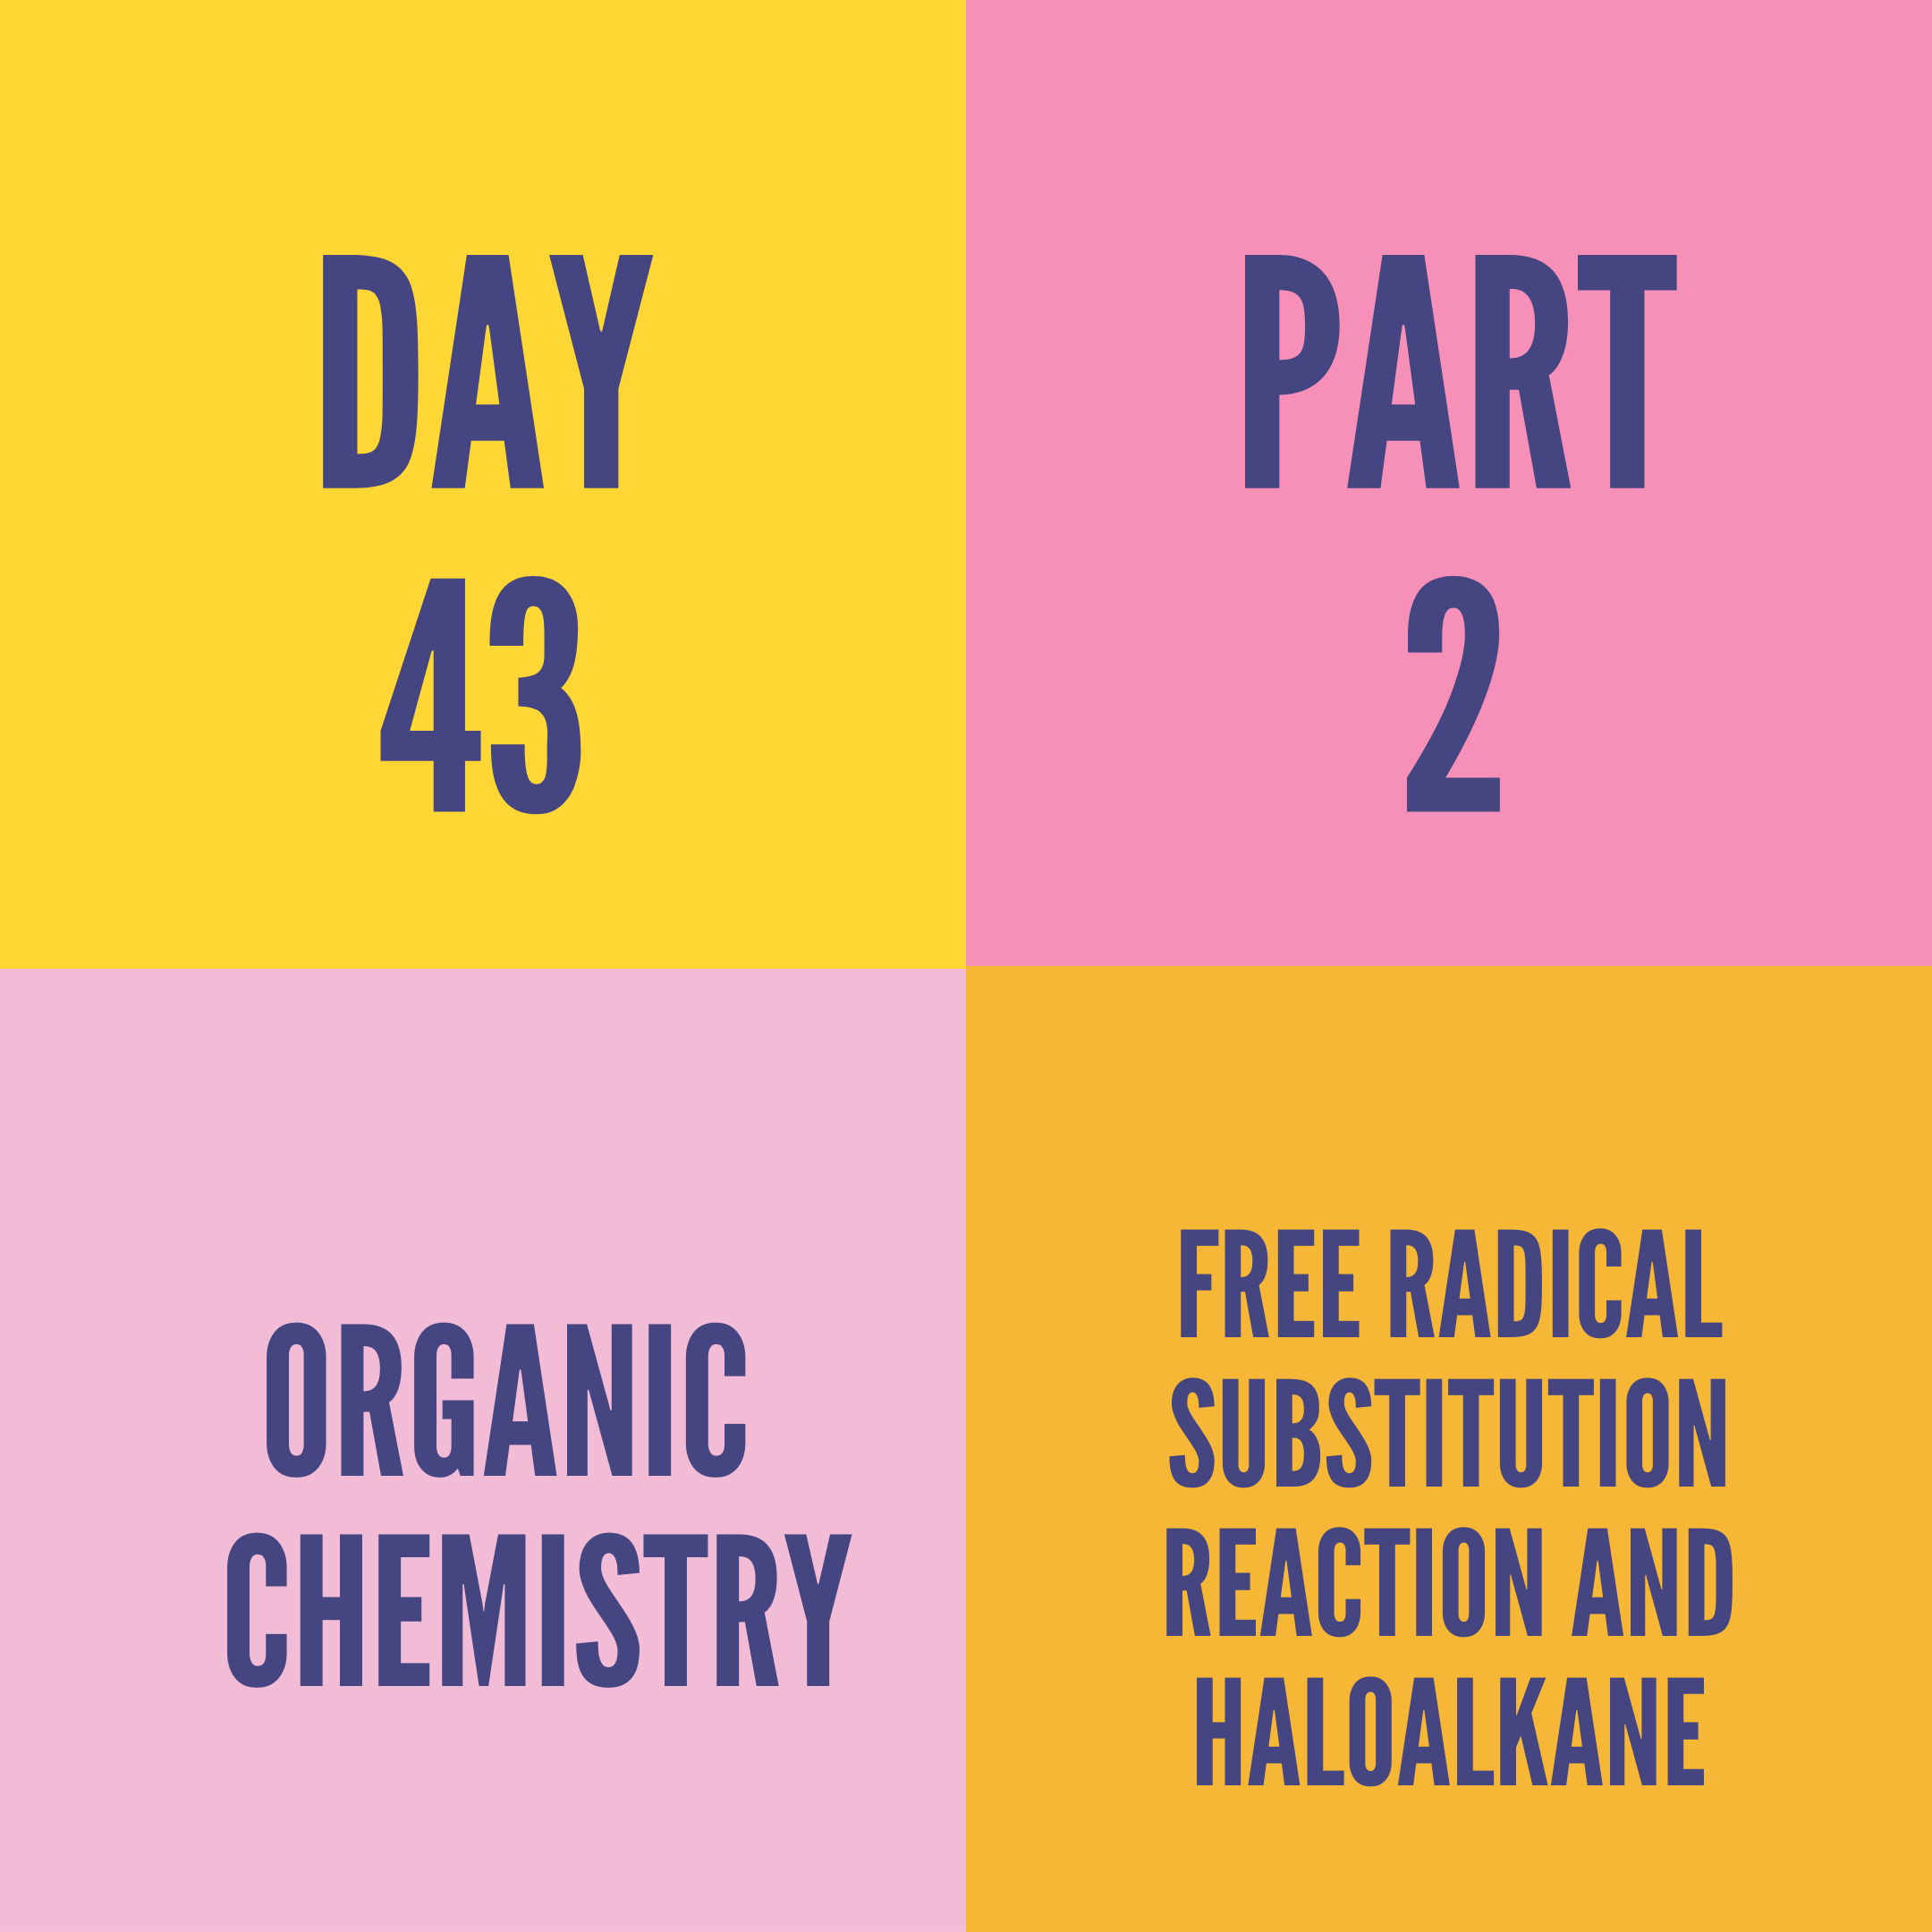 DAY-43 PART-2   FREE RADICAL SUBSTITUTION REACTION AND HALOALKANE